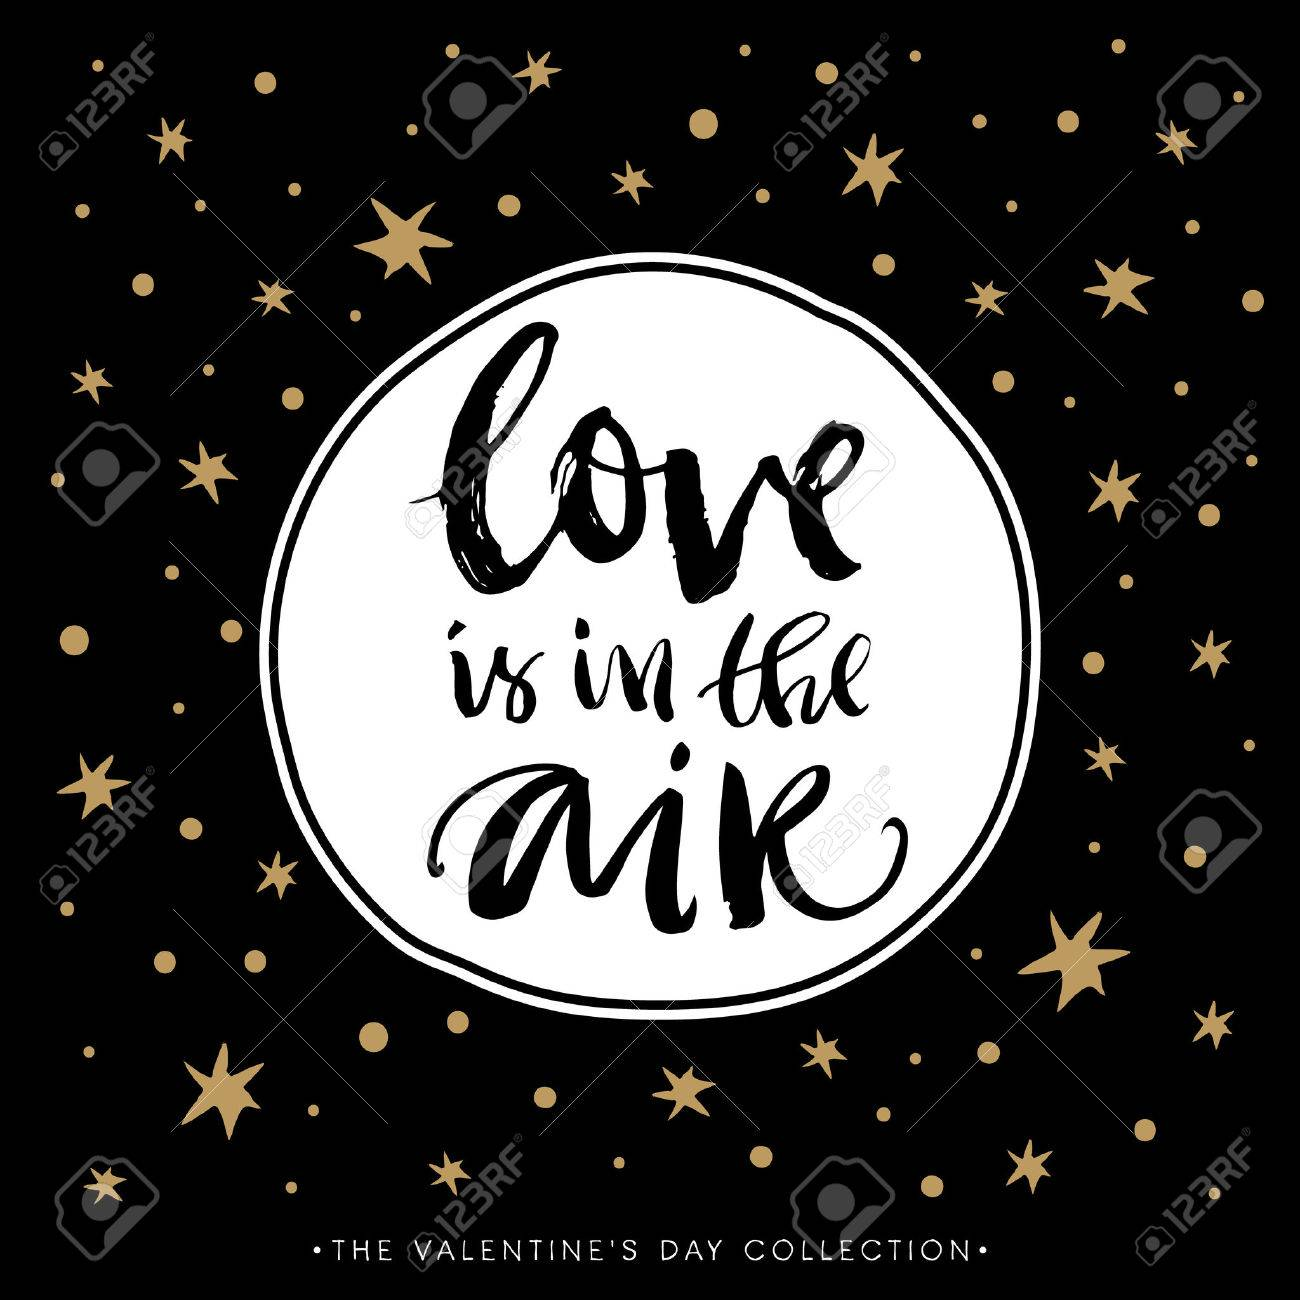 Love is in the air. Valentines day greeting card with calligraphy. Hand drawn design elements. Handwritten modern brush lettering. - 50909223